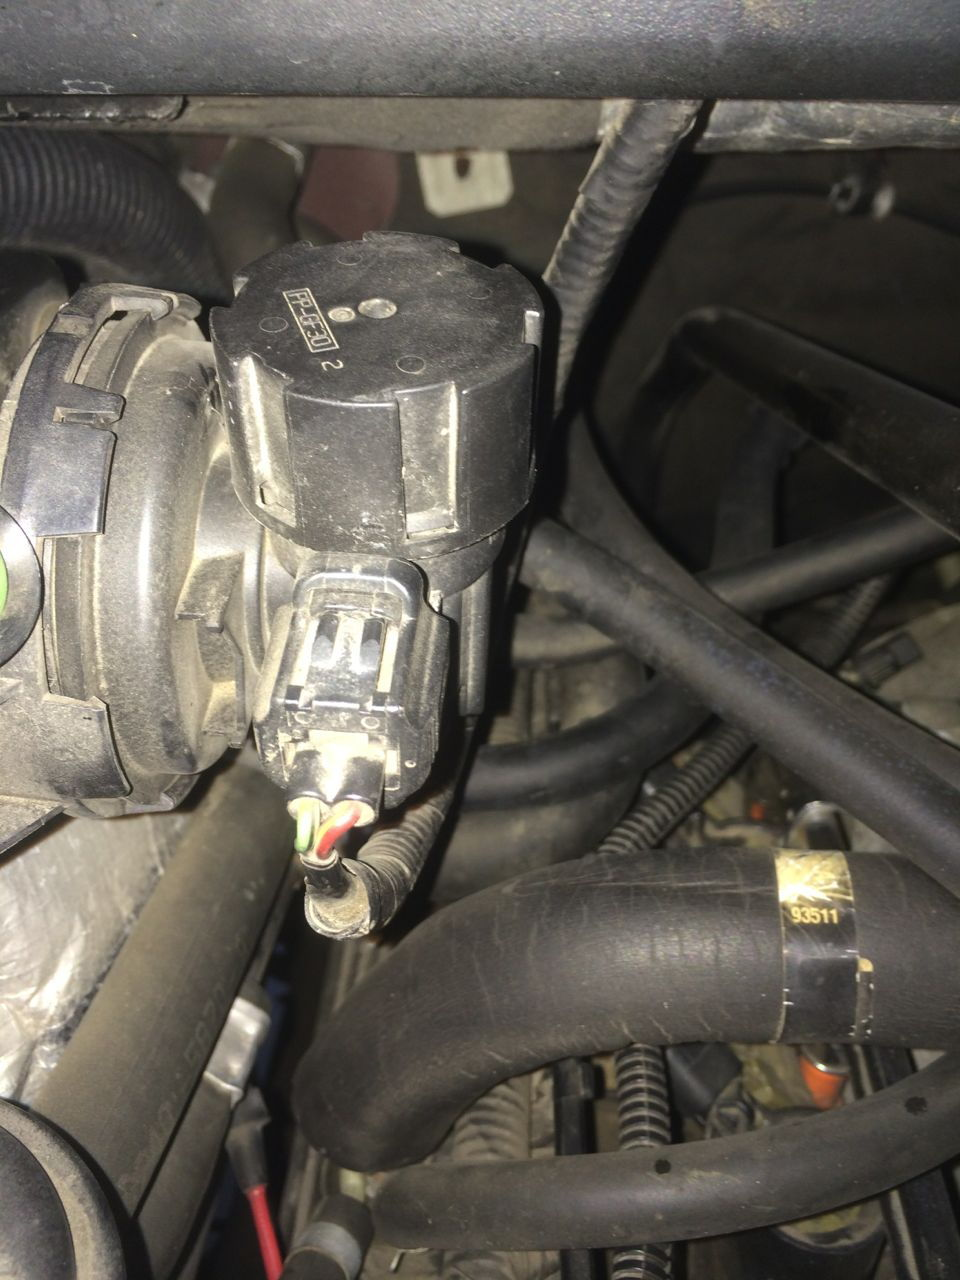 2001 Chevy Suburban Front Suspension Diagram moreover 96 Tahoe Wiring Diagram together with Vacuumhoses likewise Z24i fuel injection additionally Watch. on canister purge valve 1997 chevy